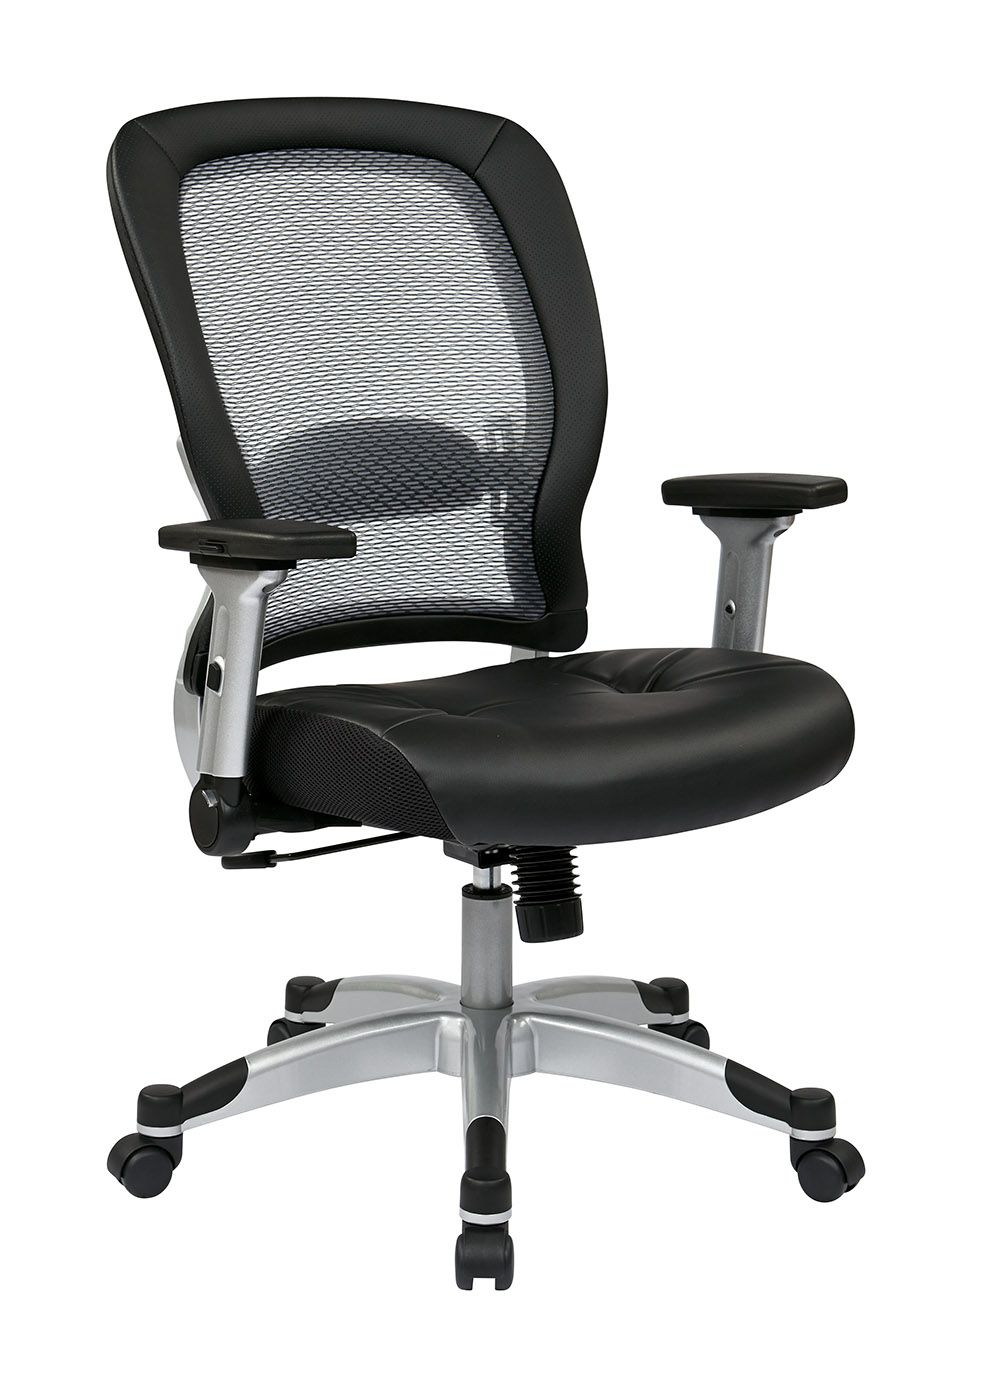 327 Series Professional Light Air Grid Back And Eco Leather Seat Chair Adjustable Lumbar Support Height Office Star Office Chair Cushion Bonded Leather